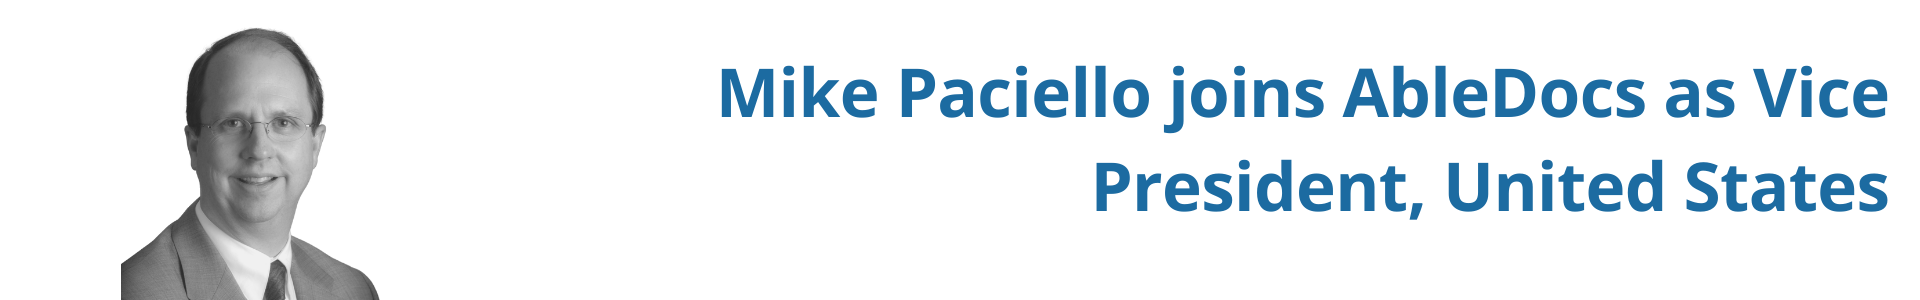 Mike Paciello joins AbleDocs as Vice President, United States